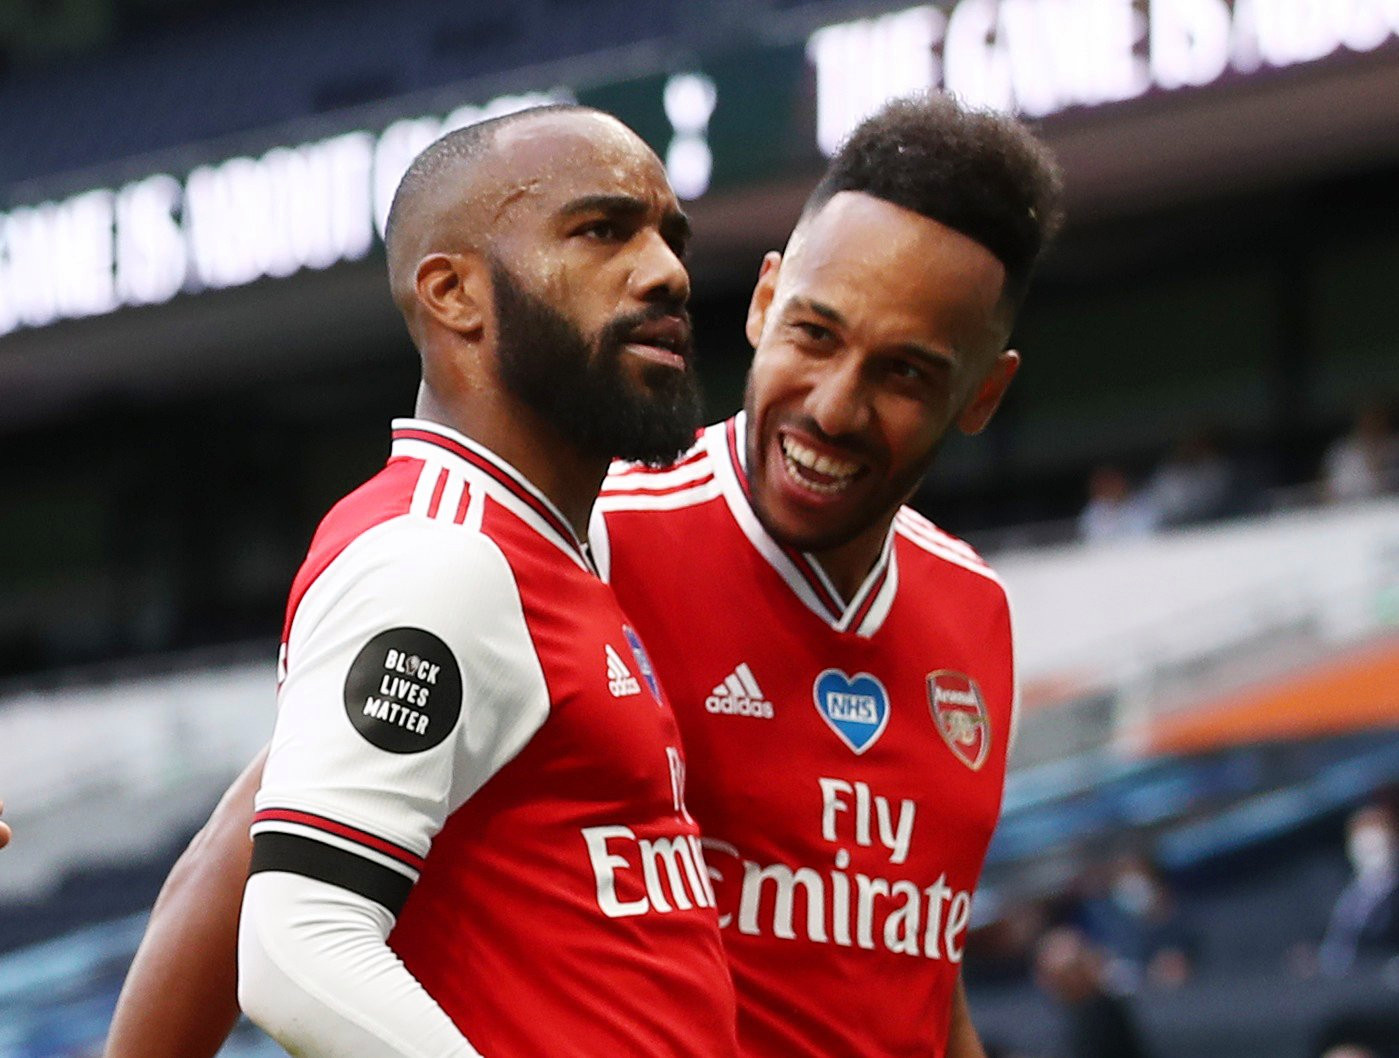 Arsenal confirm Aubameyang and Lacazette among four players to test positive for Covid